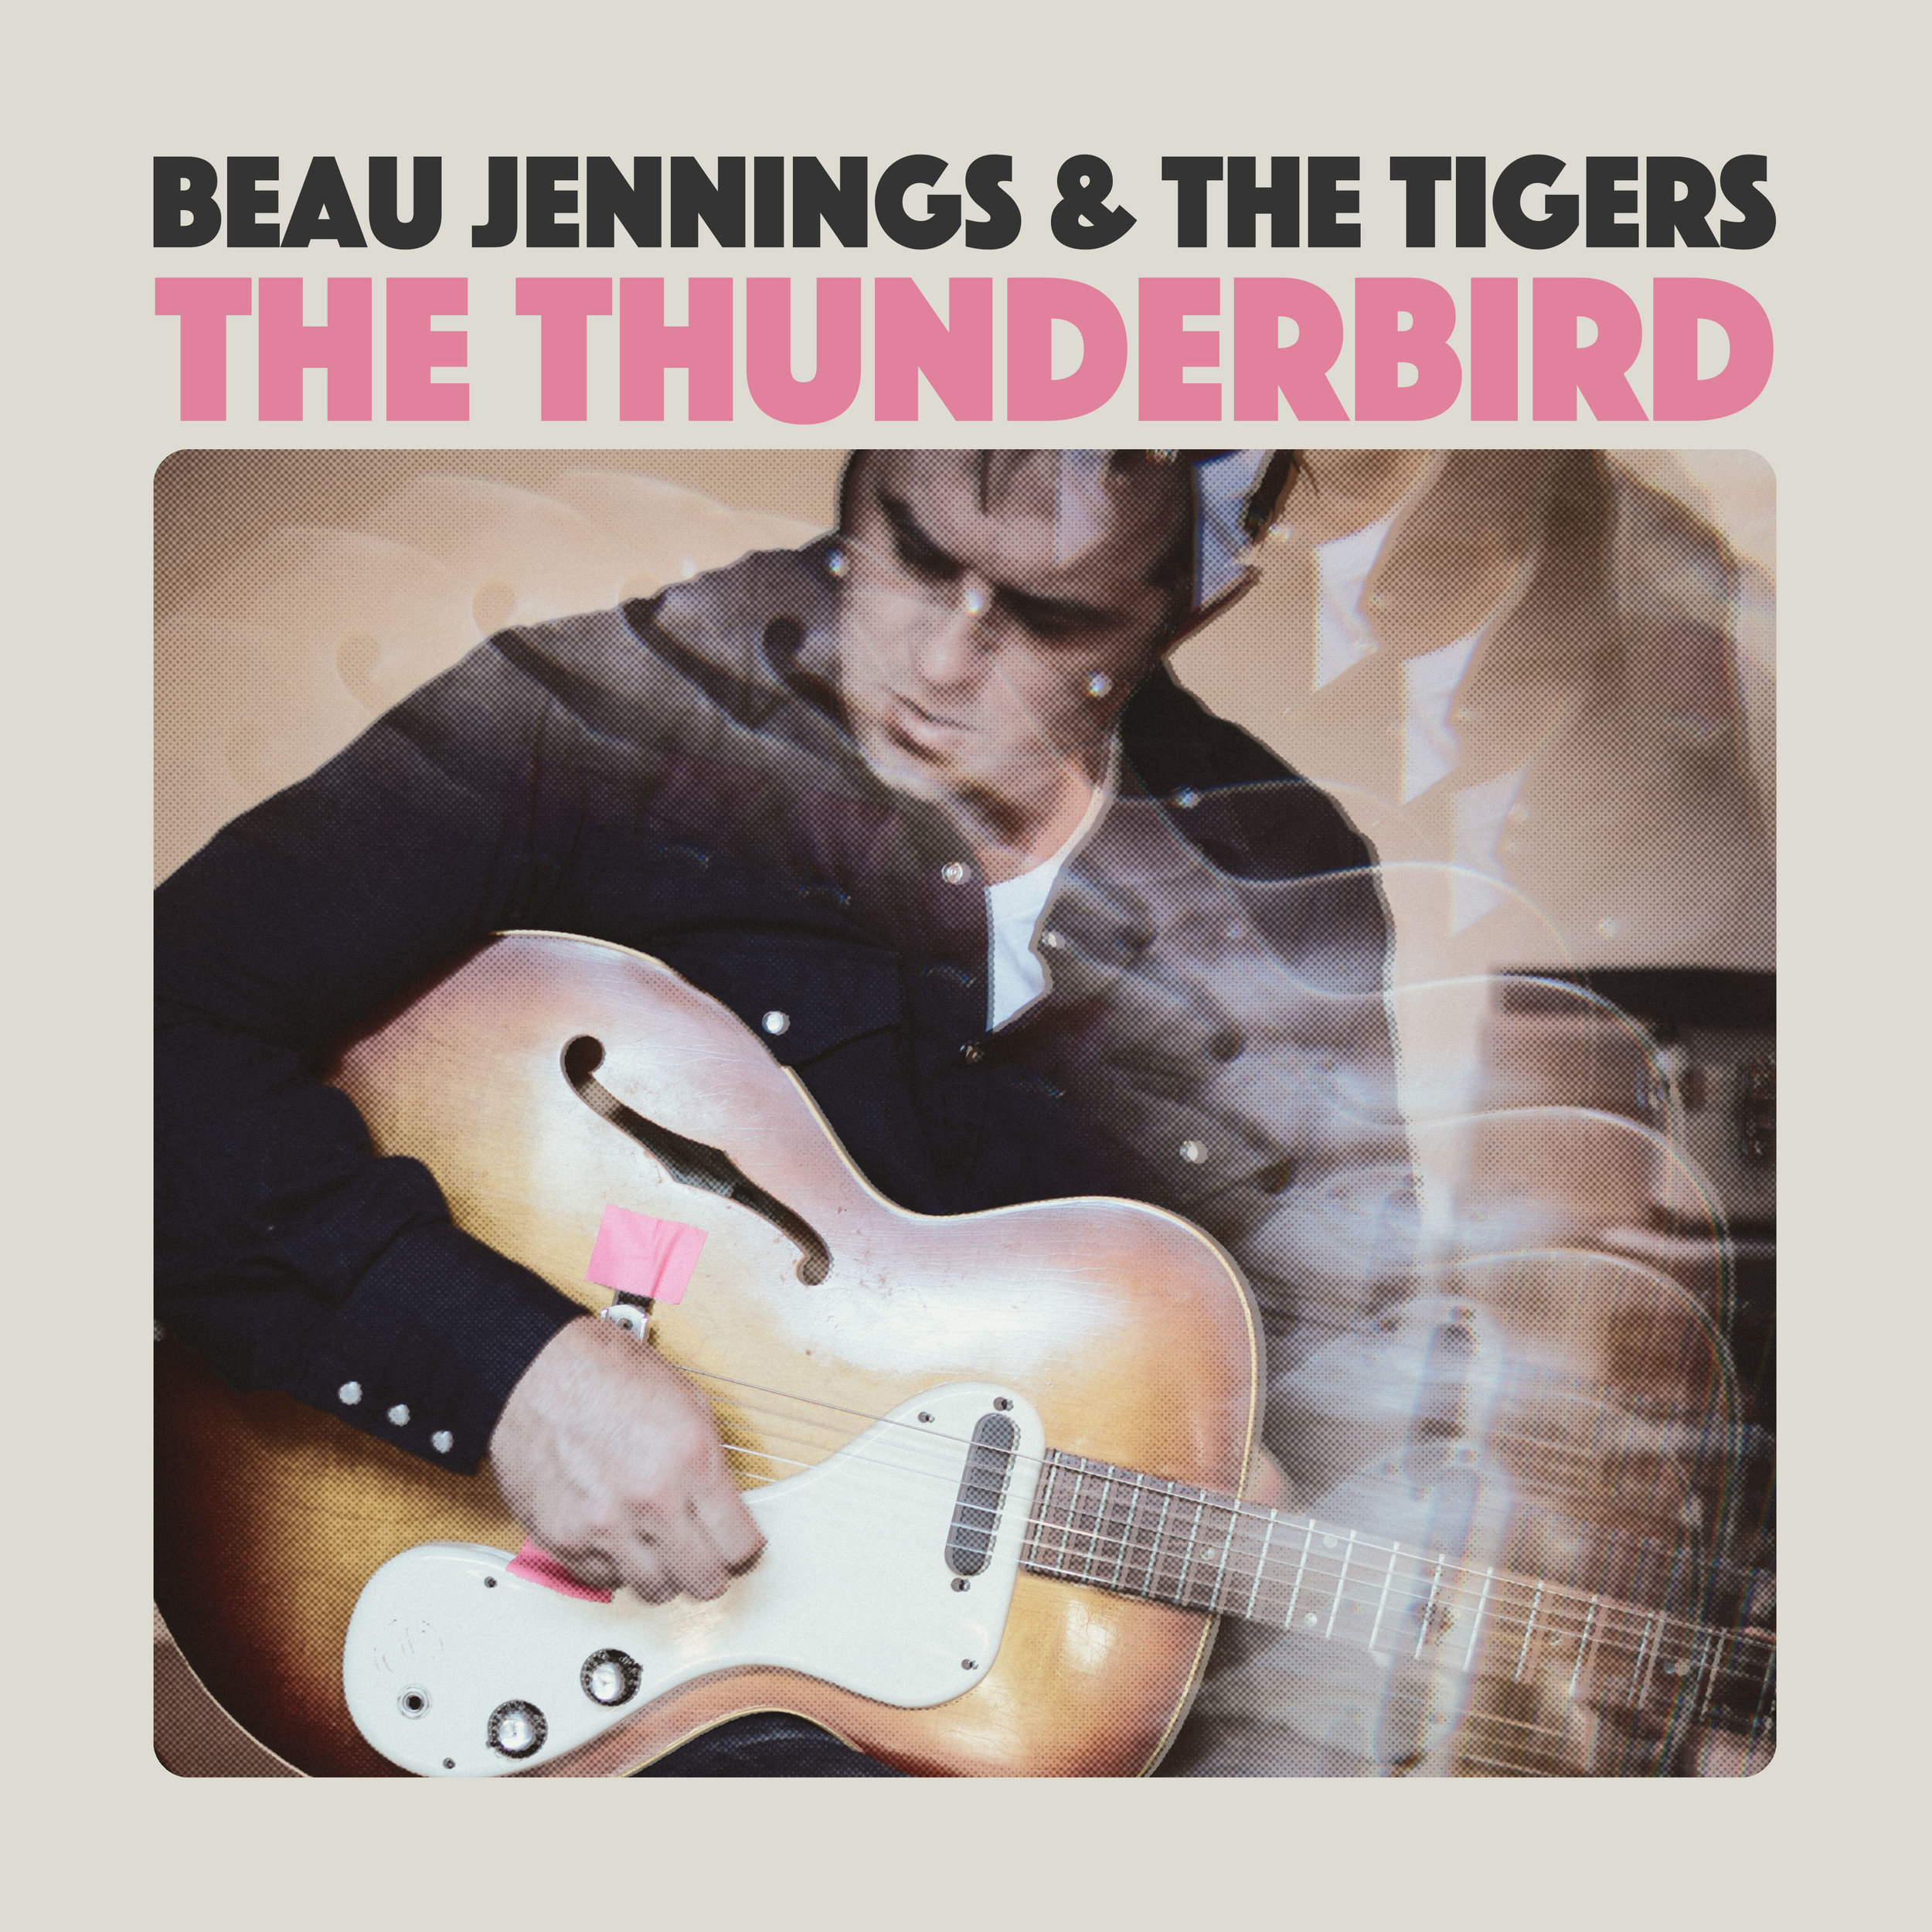 BEAU JENNINGS & THE TIGERS / The Thunderbird